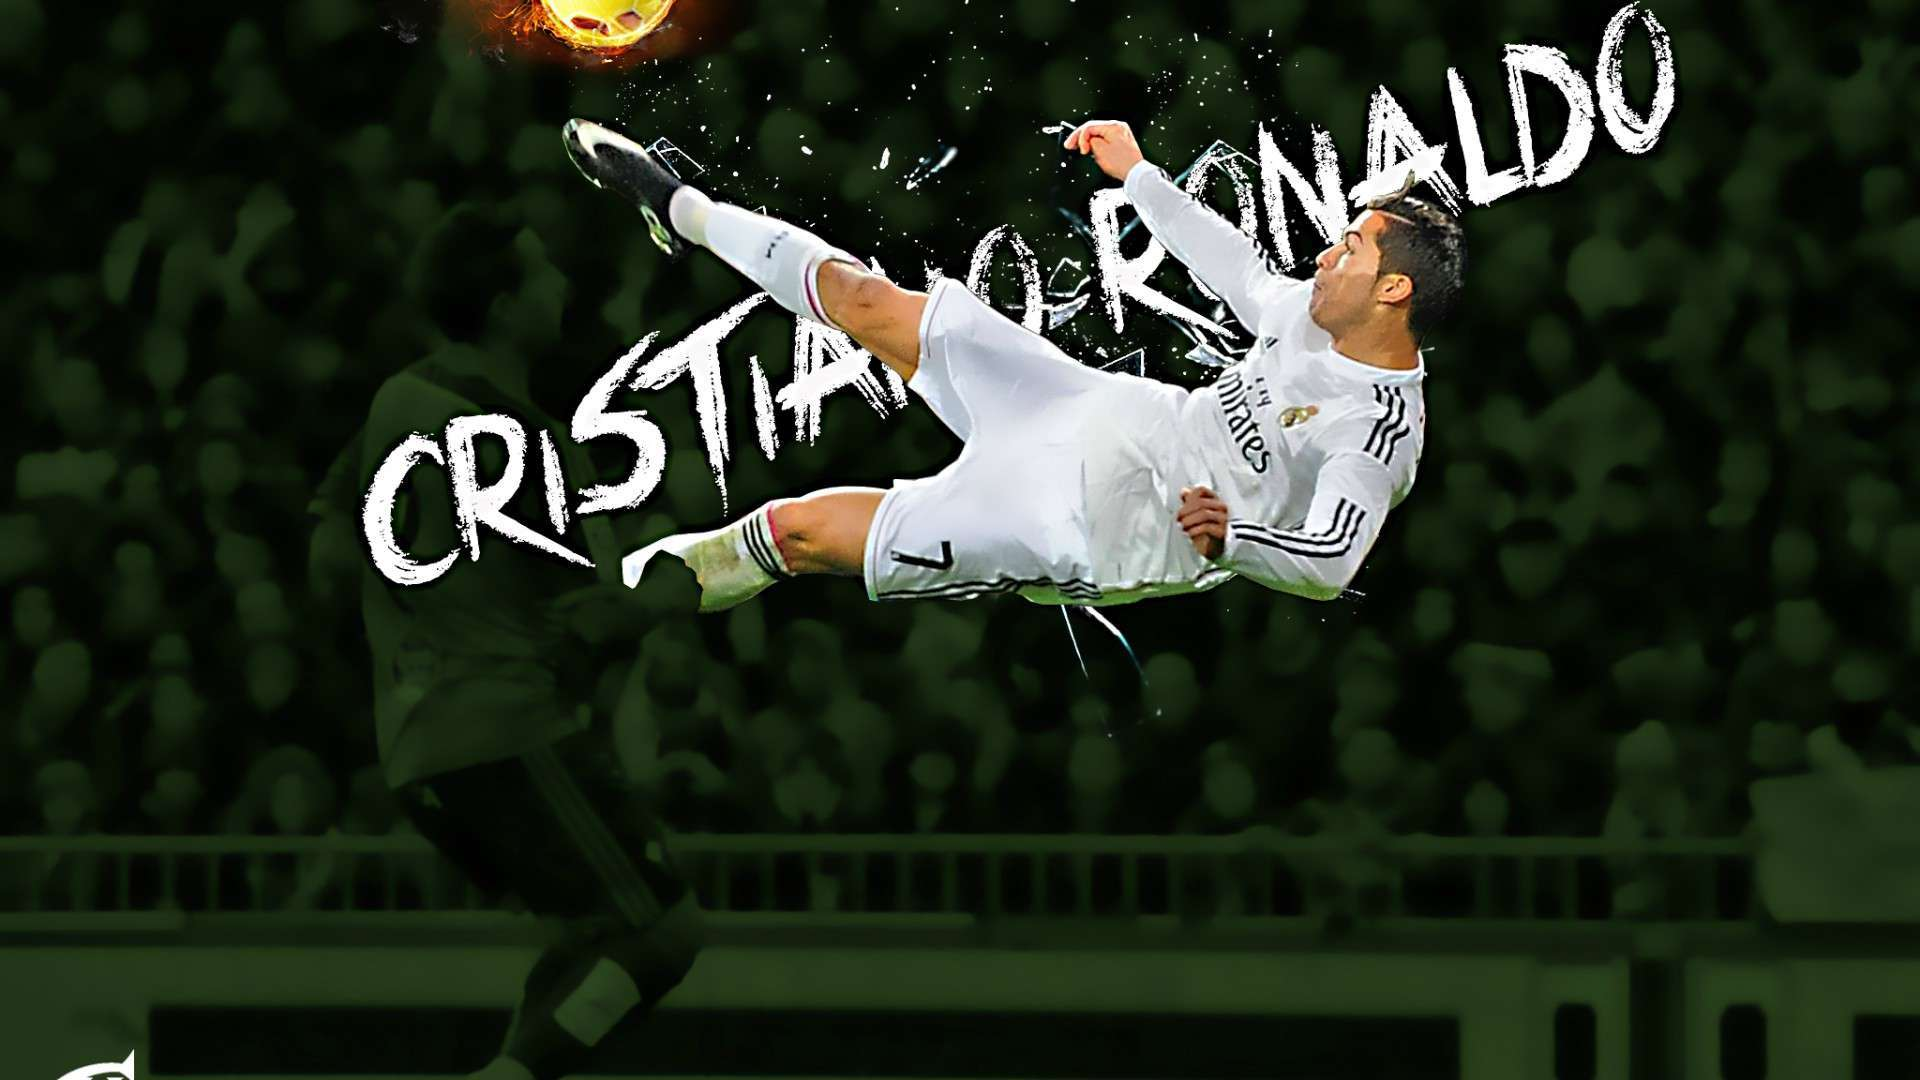 Simple Wallpaper Logo Cr7 - wp2200685  Picture_818333.jpg